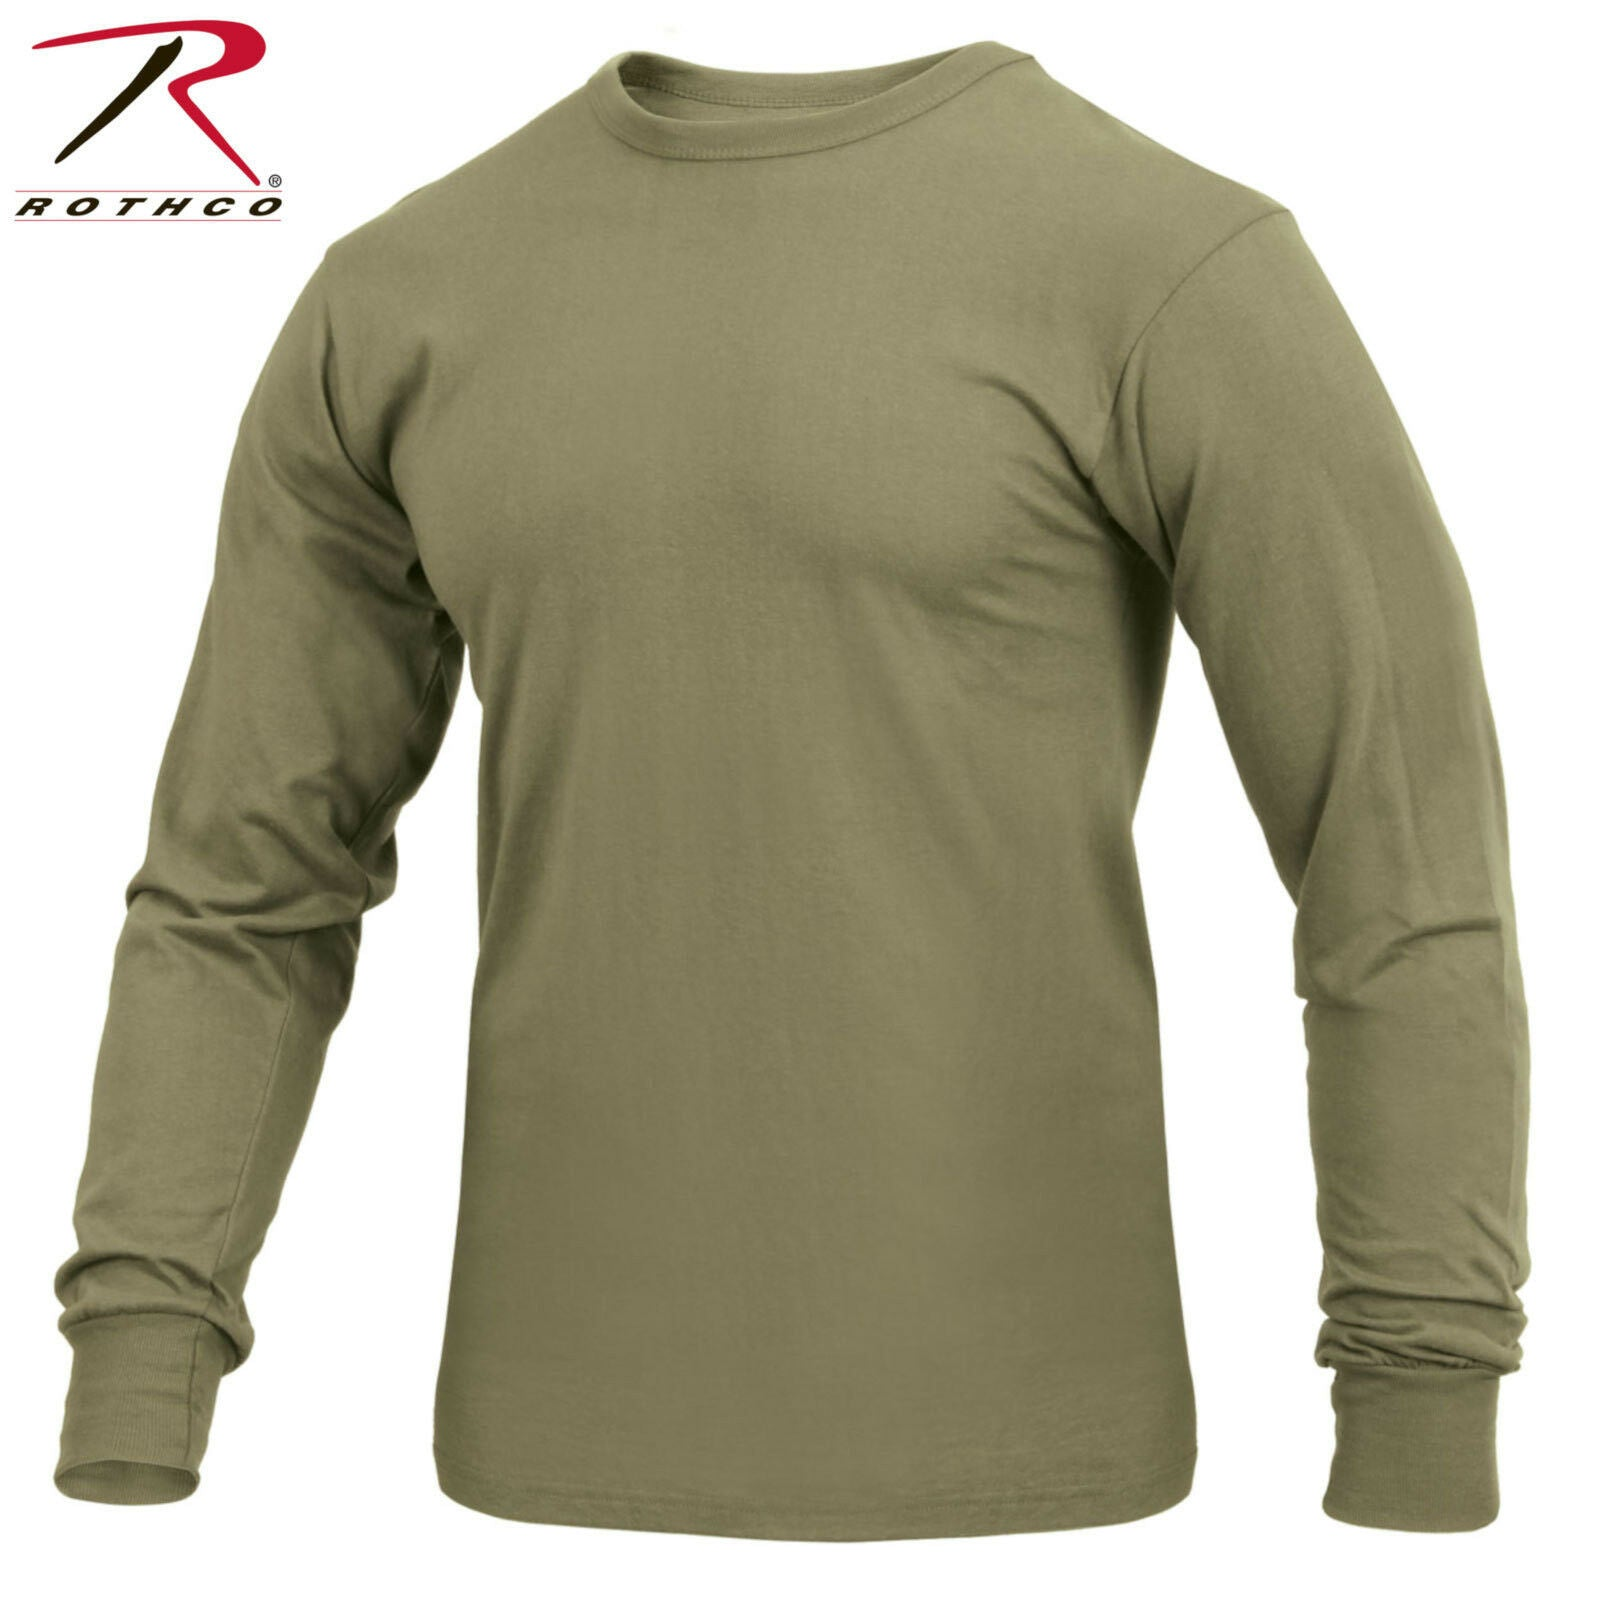 ... Brown Long Sleeve T-Shirt Tee. Zoom. Move your mouse over image or  click to enlarge d6e3bfd2e31